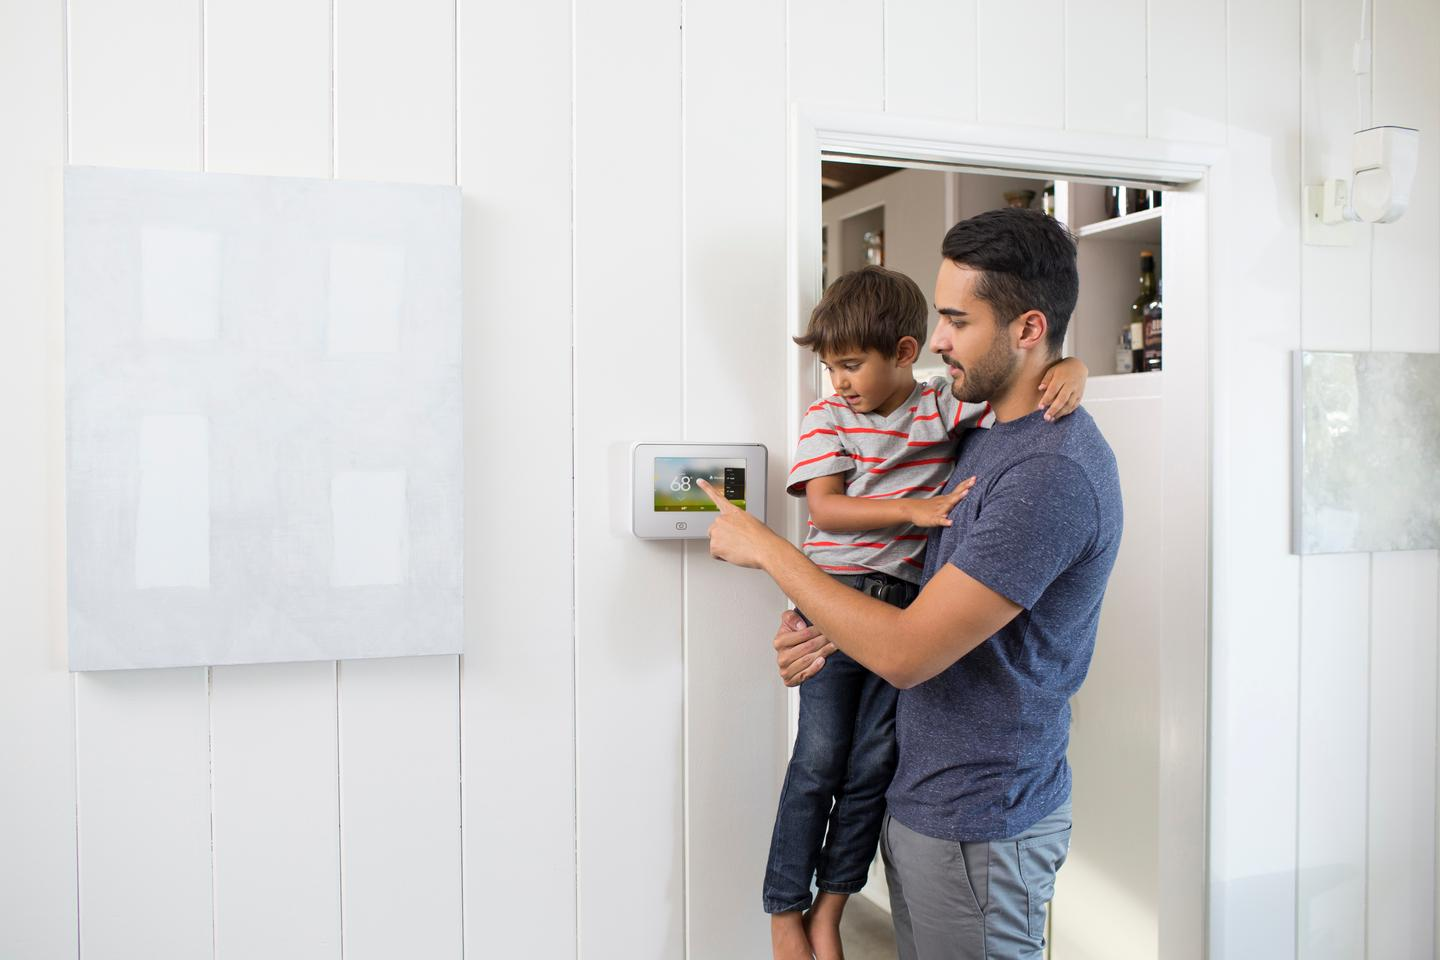 At the heart of the Vivint Sky system is a wall-mounted, 7-inch capacitive touch display